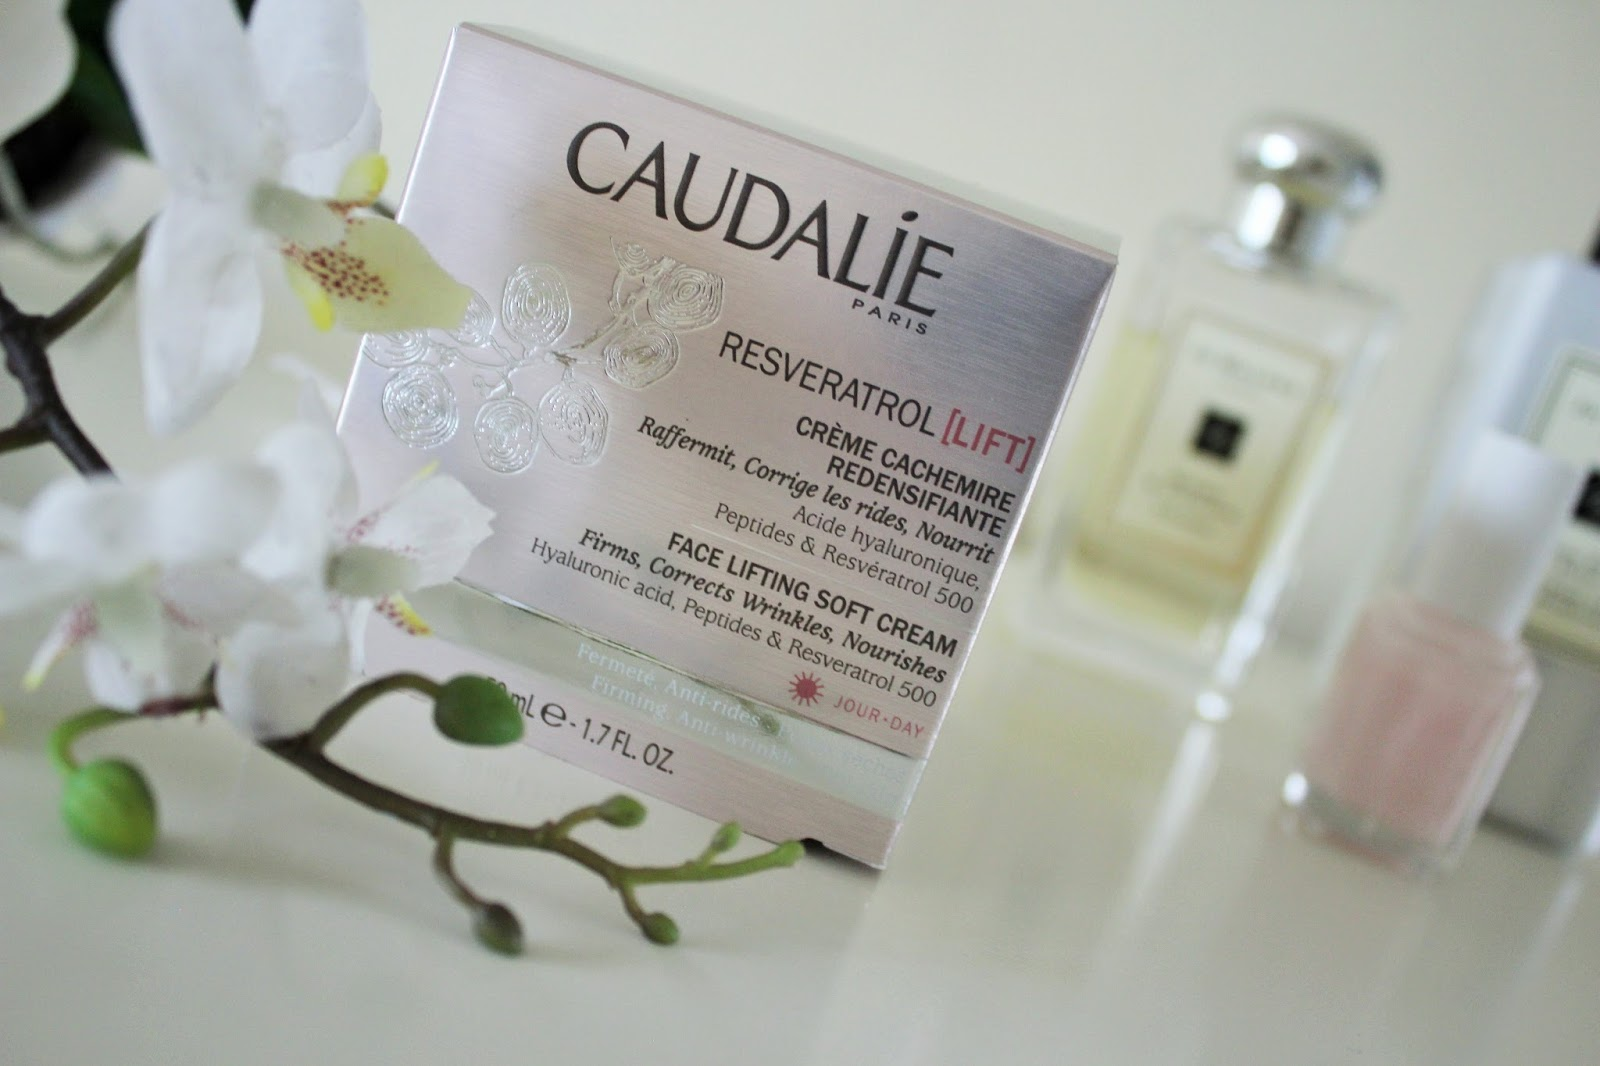 Caudalie Resveratrol Lift Face Lifting Soft Cream Review 1